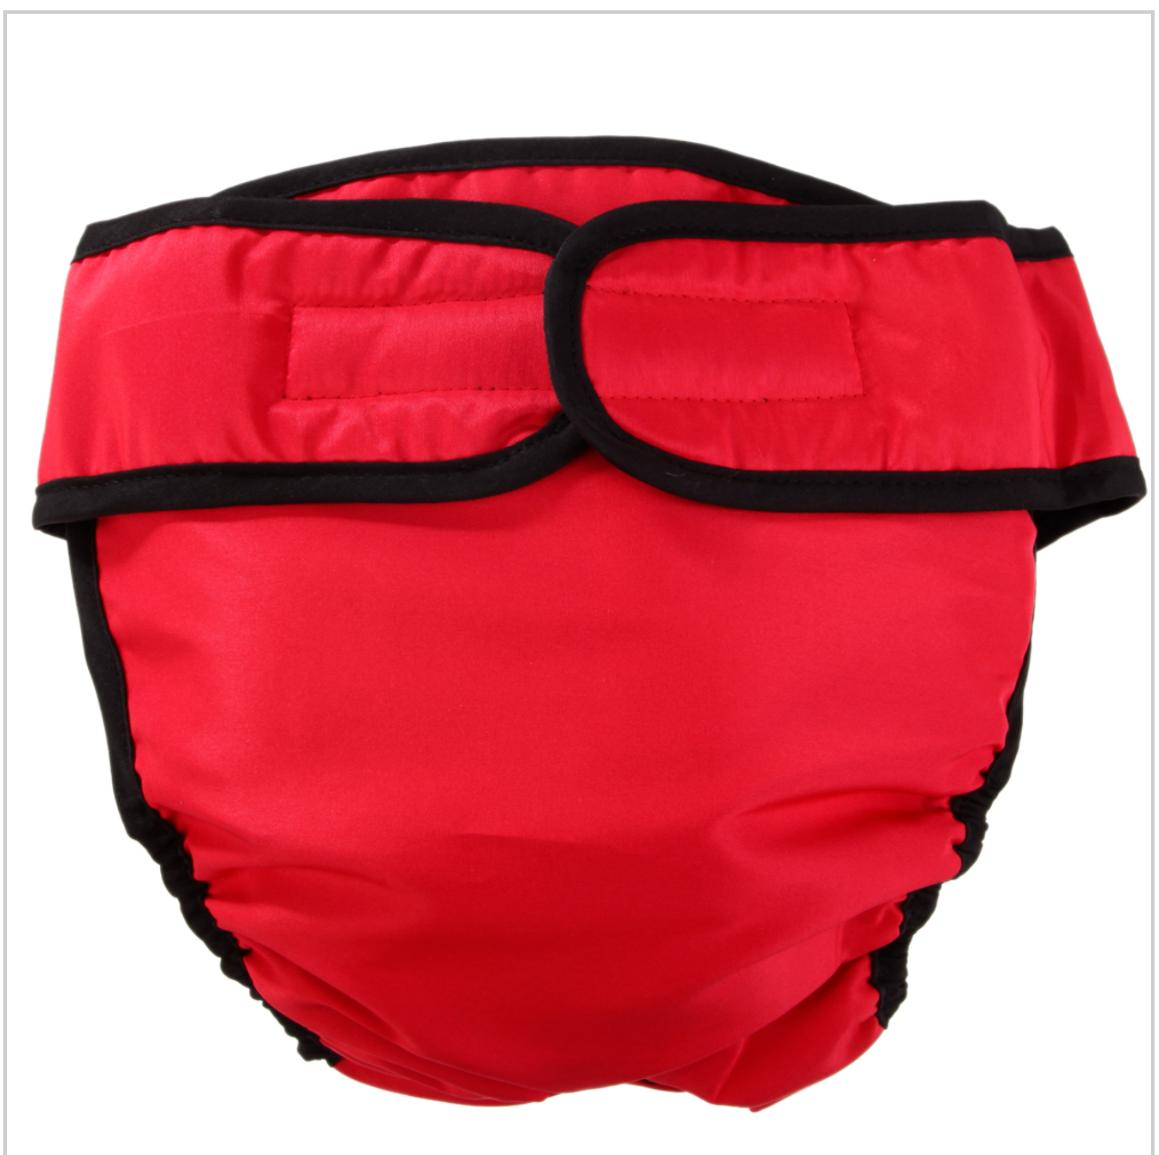 Washable Diaper Pet Puppy Camo Red Black Diapers